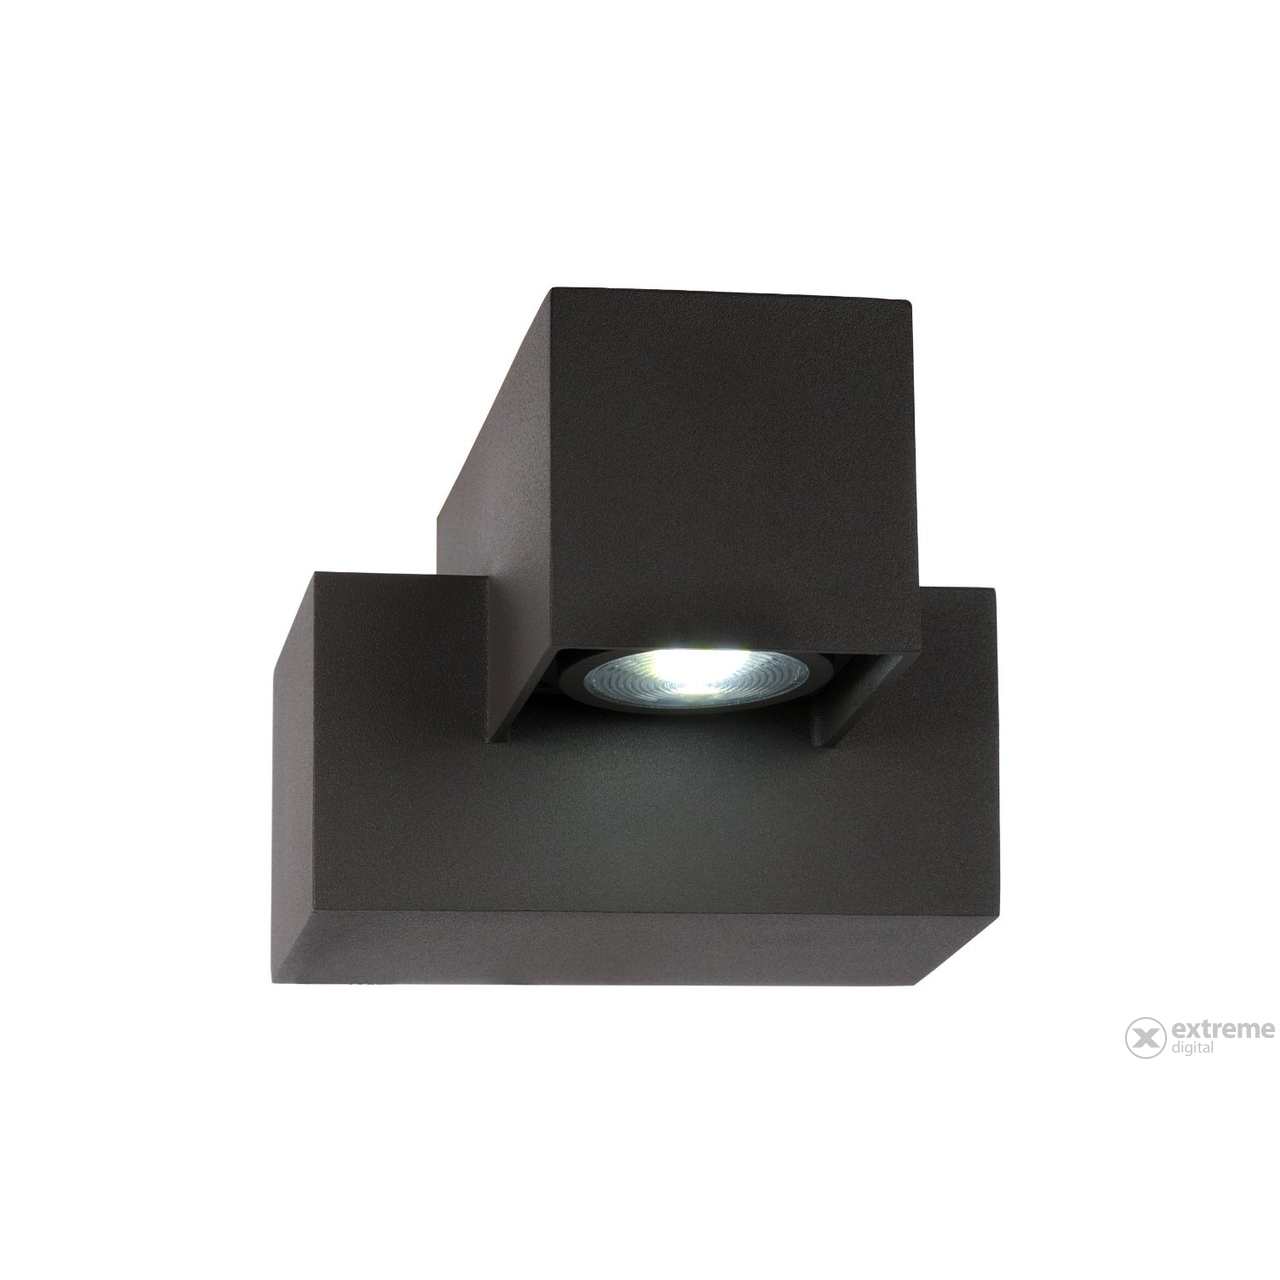 lucide-kwinto-led-lampa-28852-23-30_4ca5ccb0.jpg